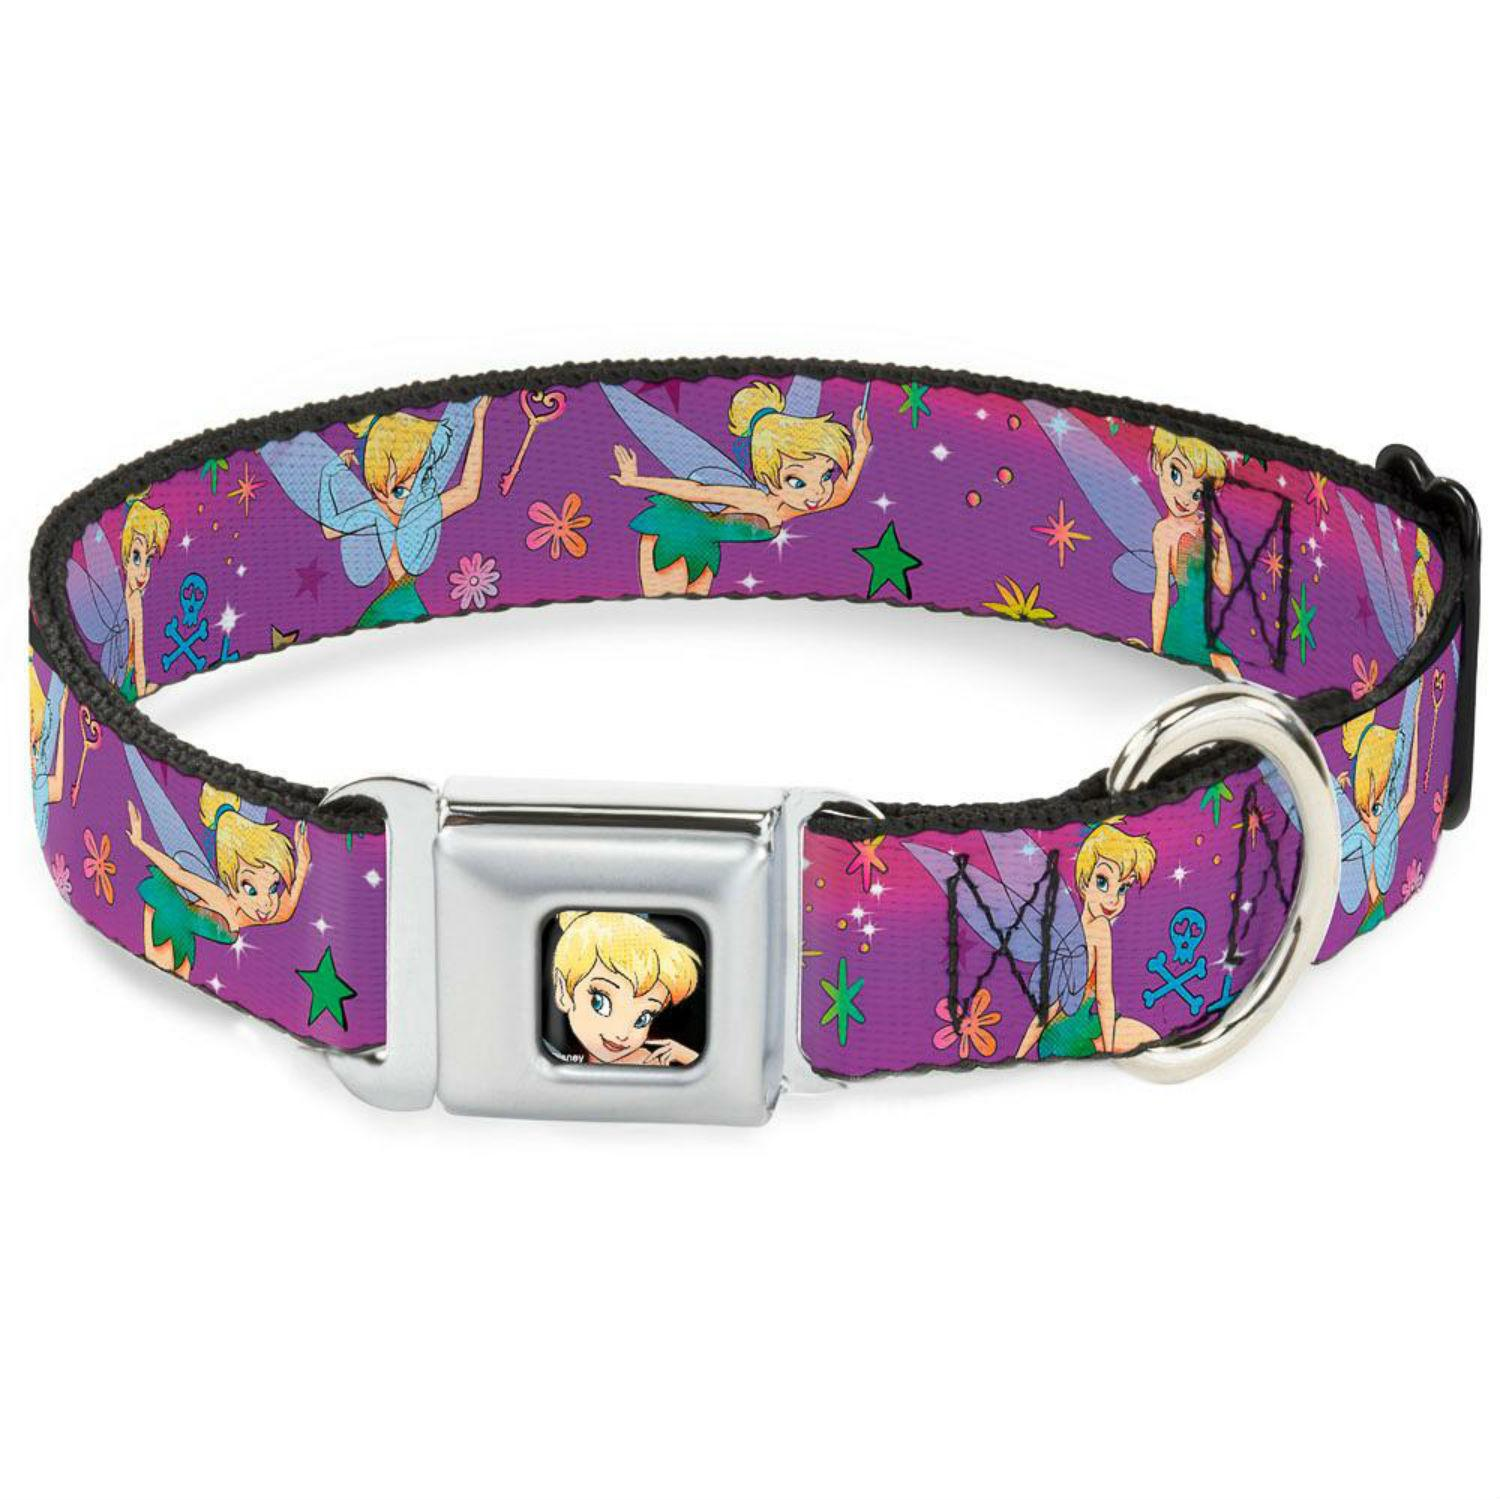 Tinkerbell Flower and Stars Seatbelt Buckle Dog Collar by Buckle-Down - Purple